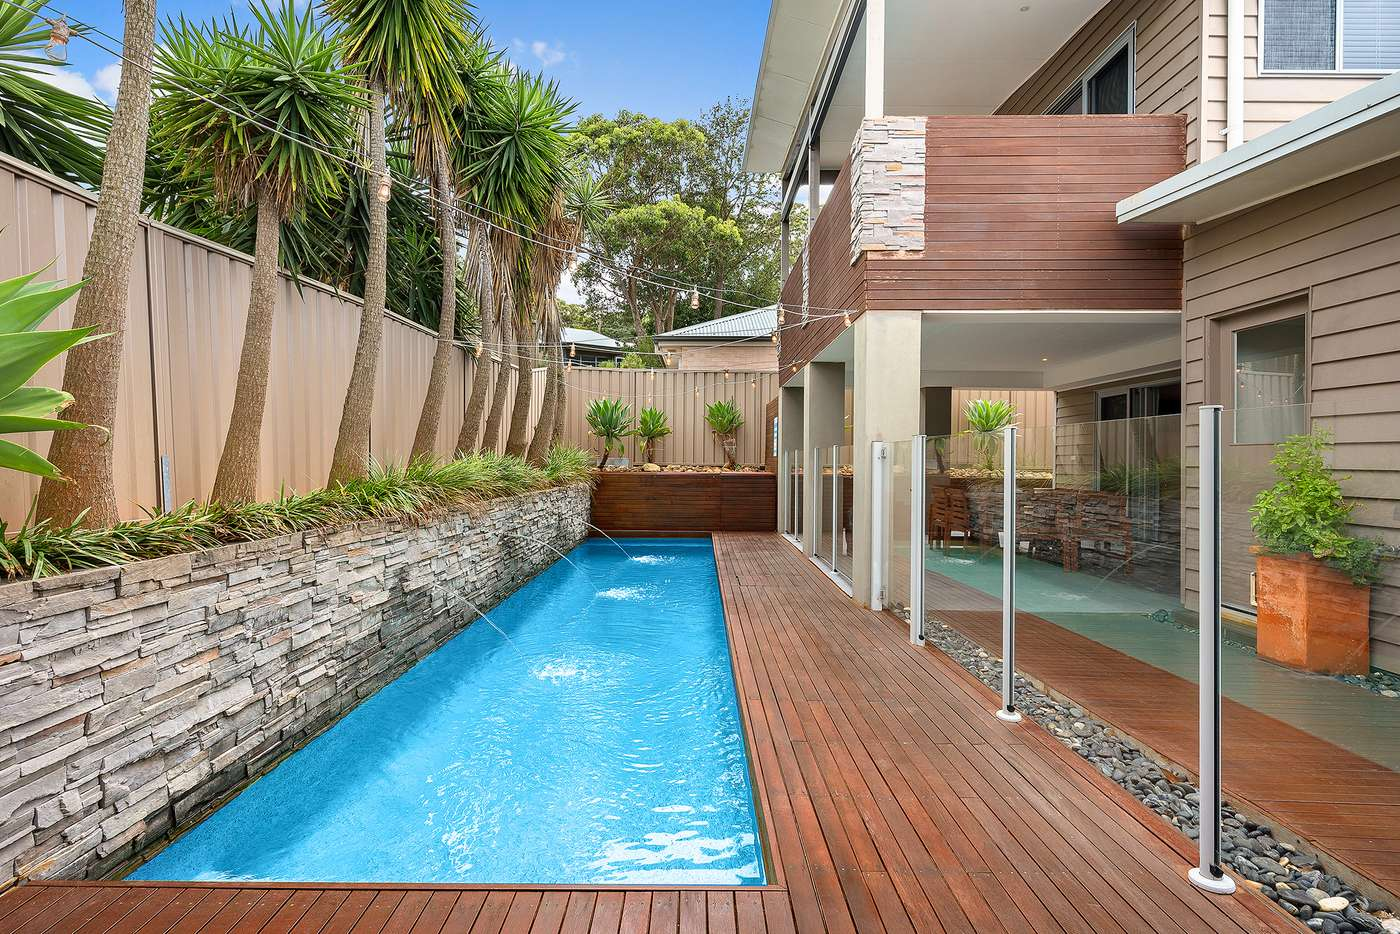 Seventh view of Homely house listing, 9 Franciska Close, Floraville NSW 2280